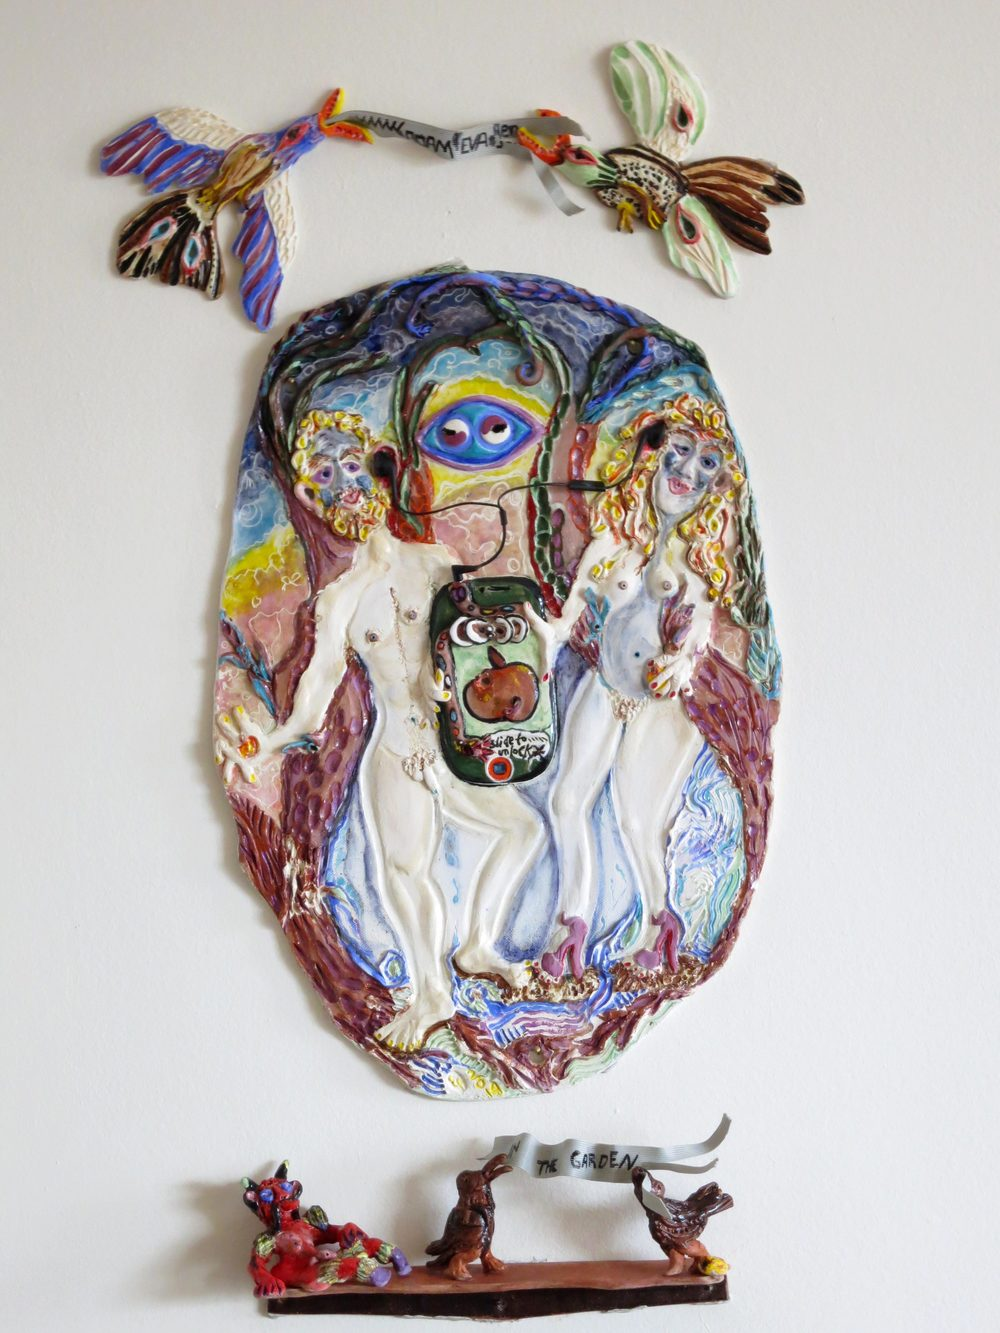 Adam-and-Eva-in-the-garden,-mixed-media-earthenware1446.jpg